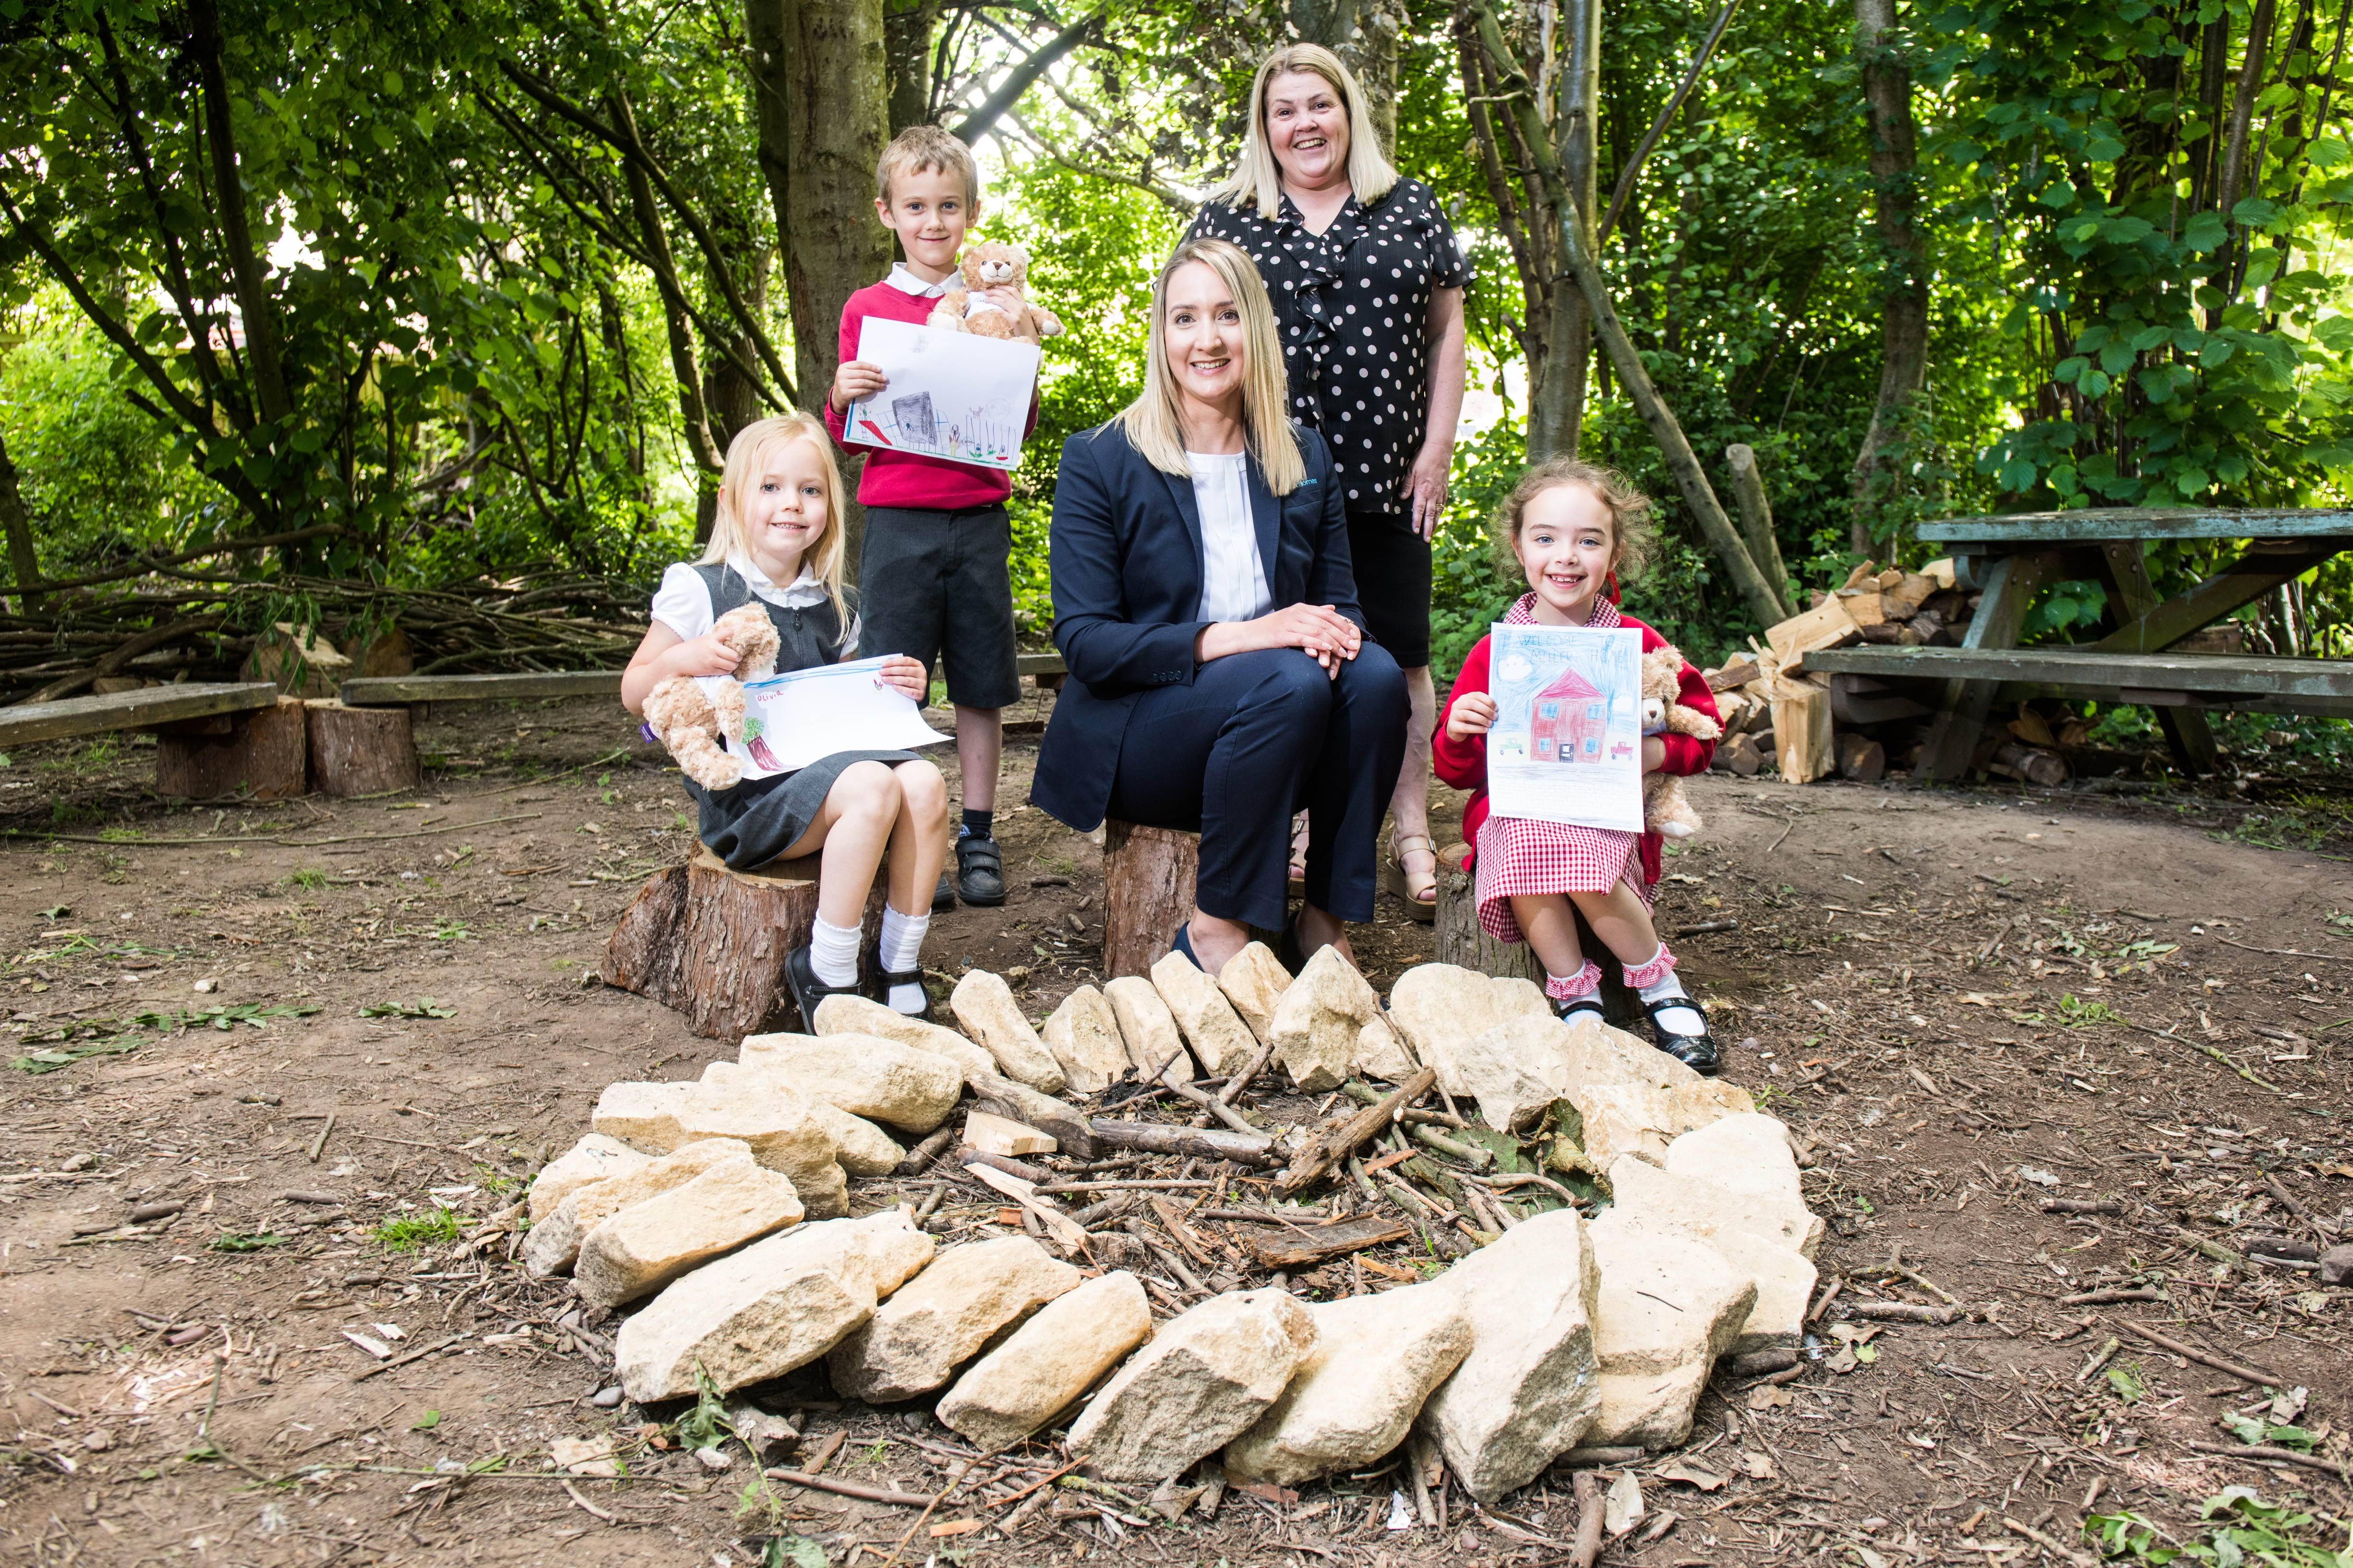 MILLER HOMES DONATES FUNDS TO HELP PORTWAY INFANT SCHOOL BUILD OUTDOOR LEARNING AREA